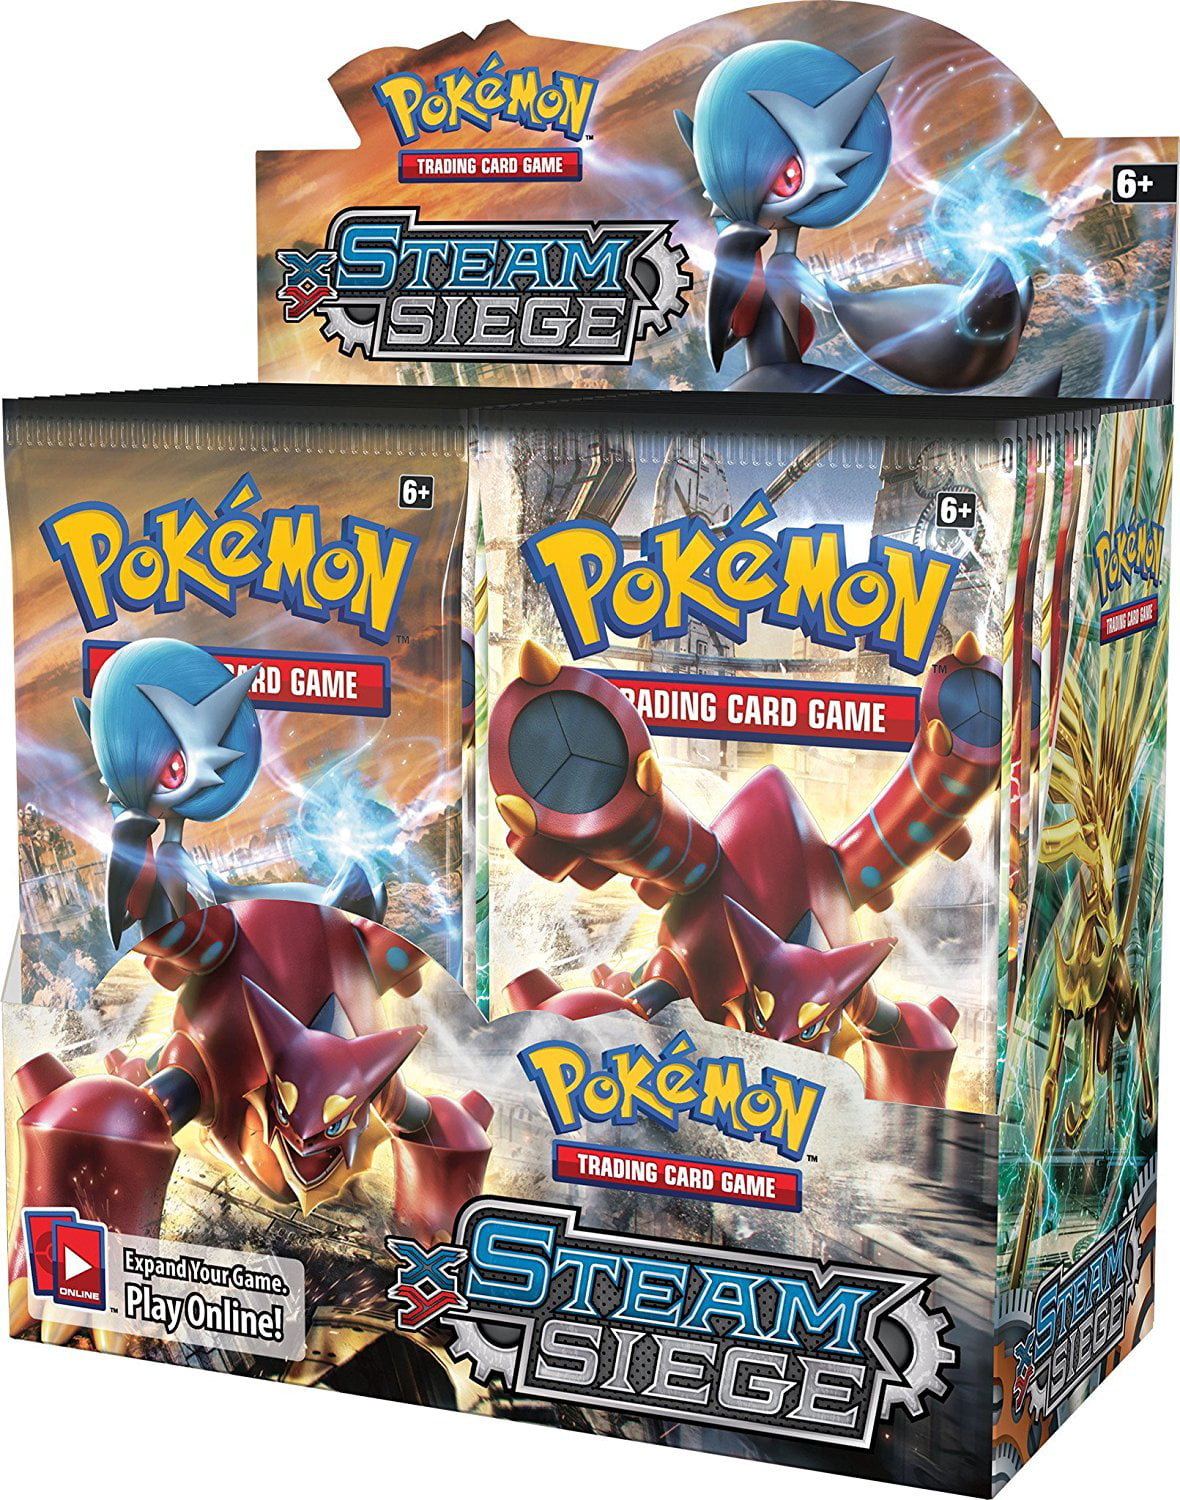 Pokemon XY Steam Siege Booster Box [36 Packs] by POKEMONUSA